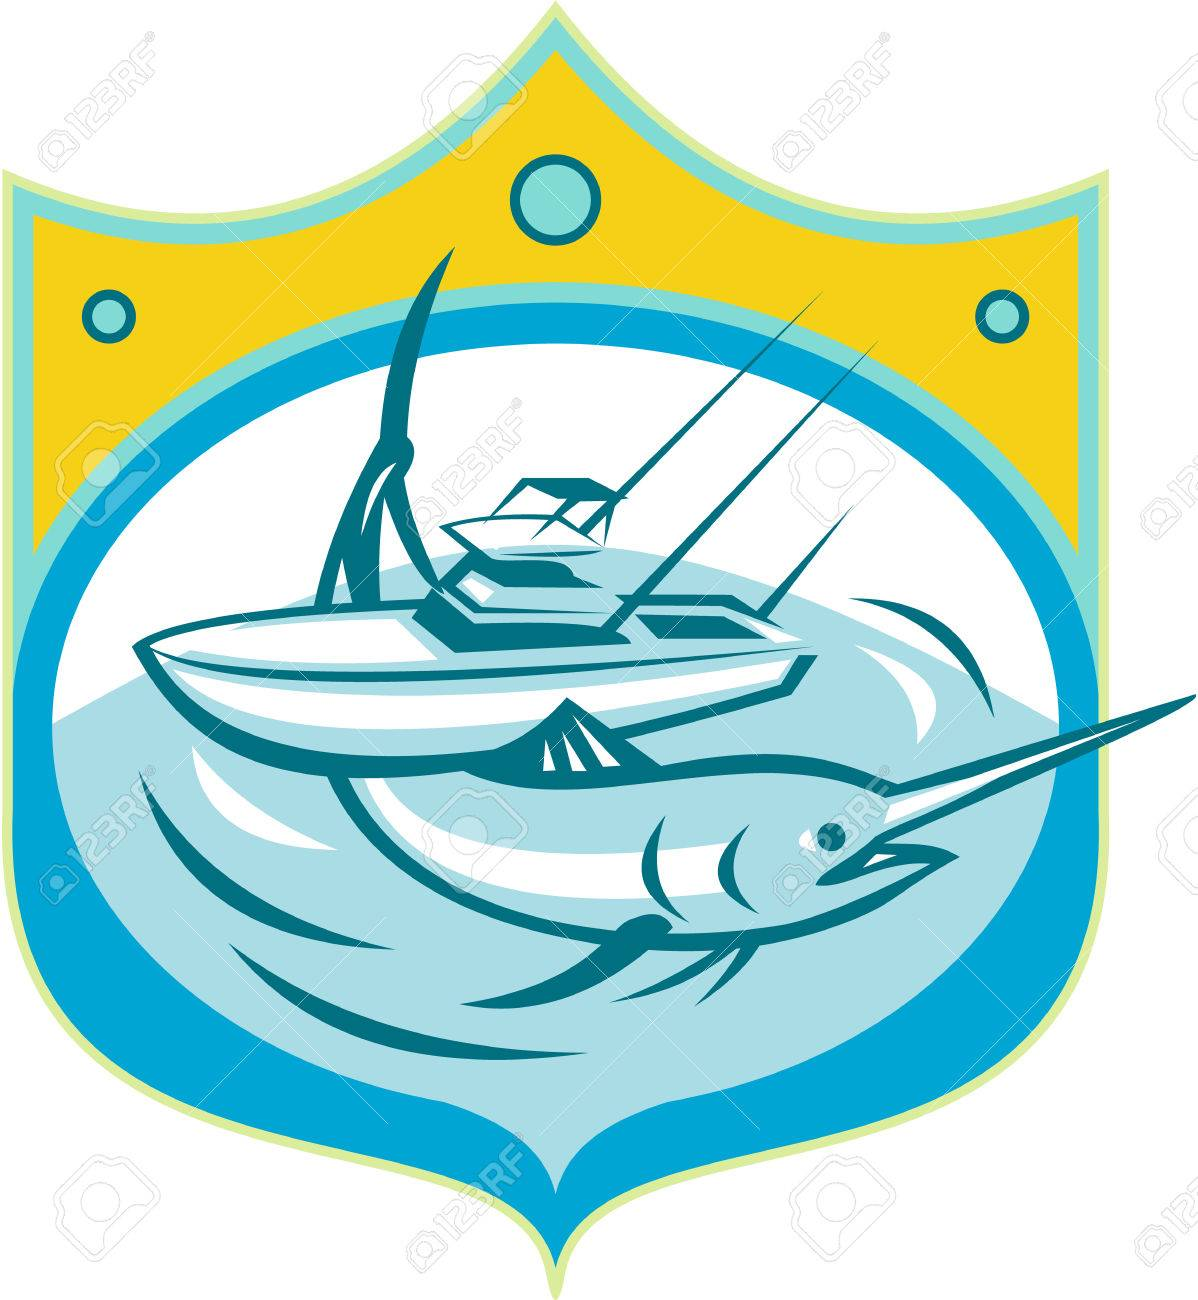 1198x1300 Fishing Boat Clipart Marlin Fishing